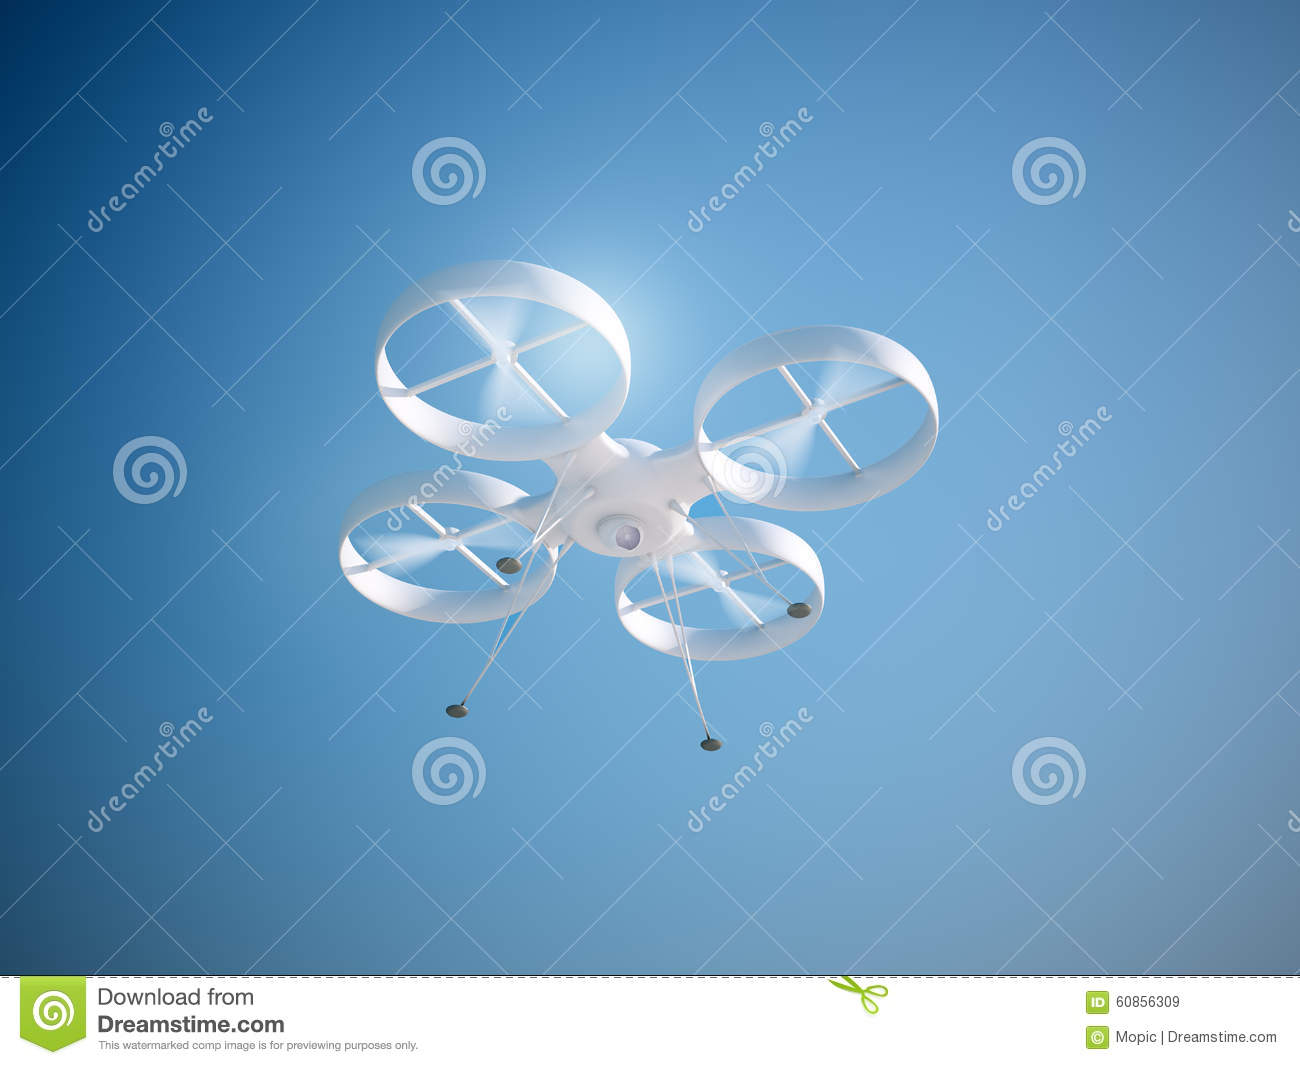 Quadcopter â Drone With Equipment Royalty-Free Stock Image ...